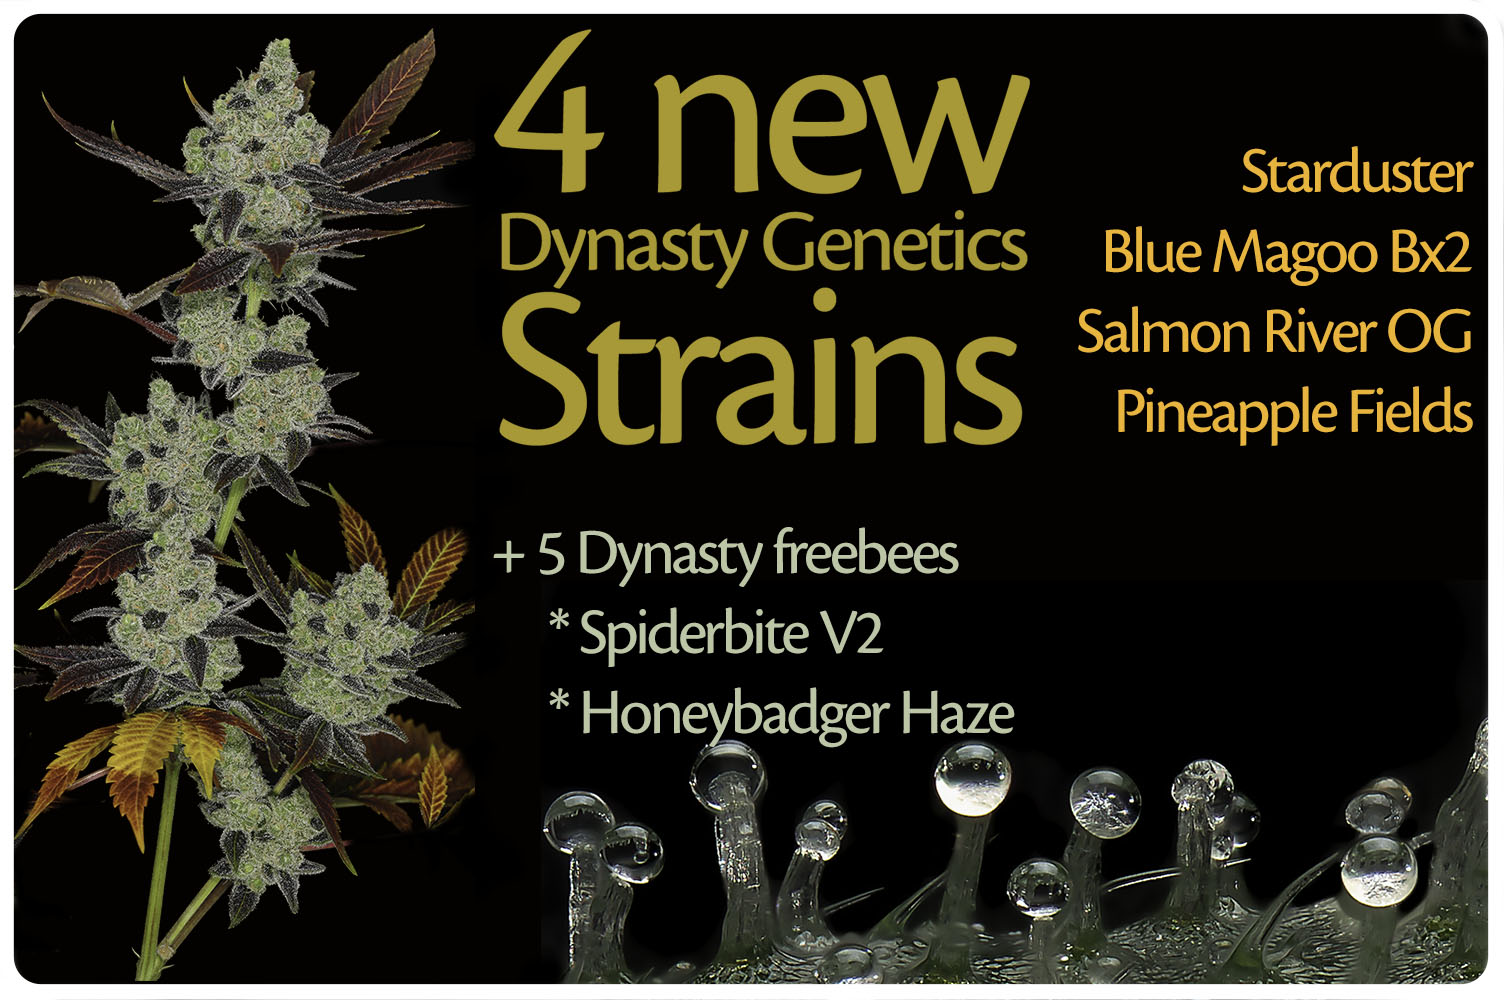 Get 5 freebees with every order from Dynasty seeds